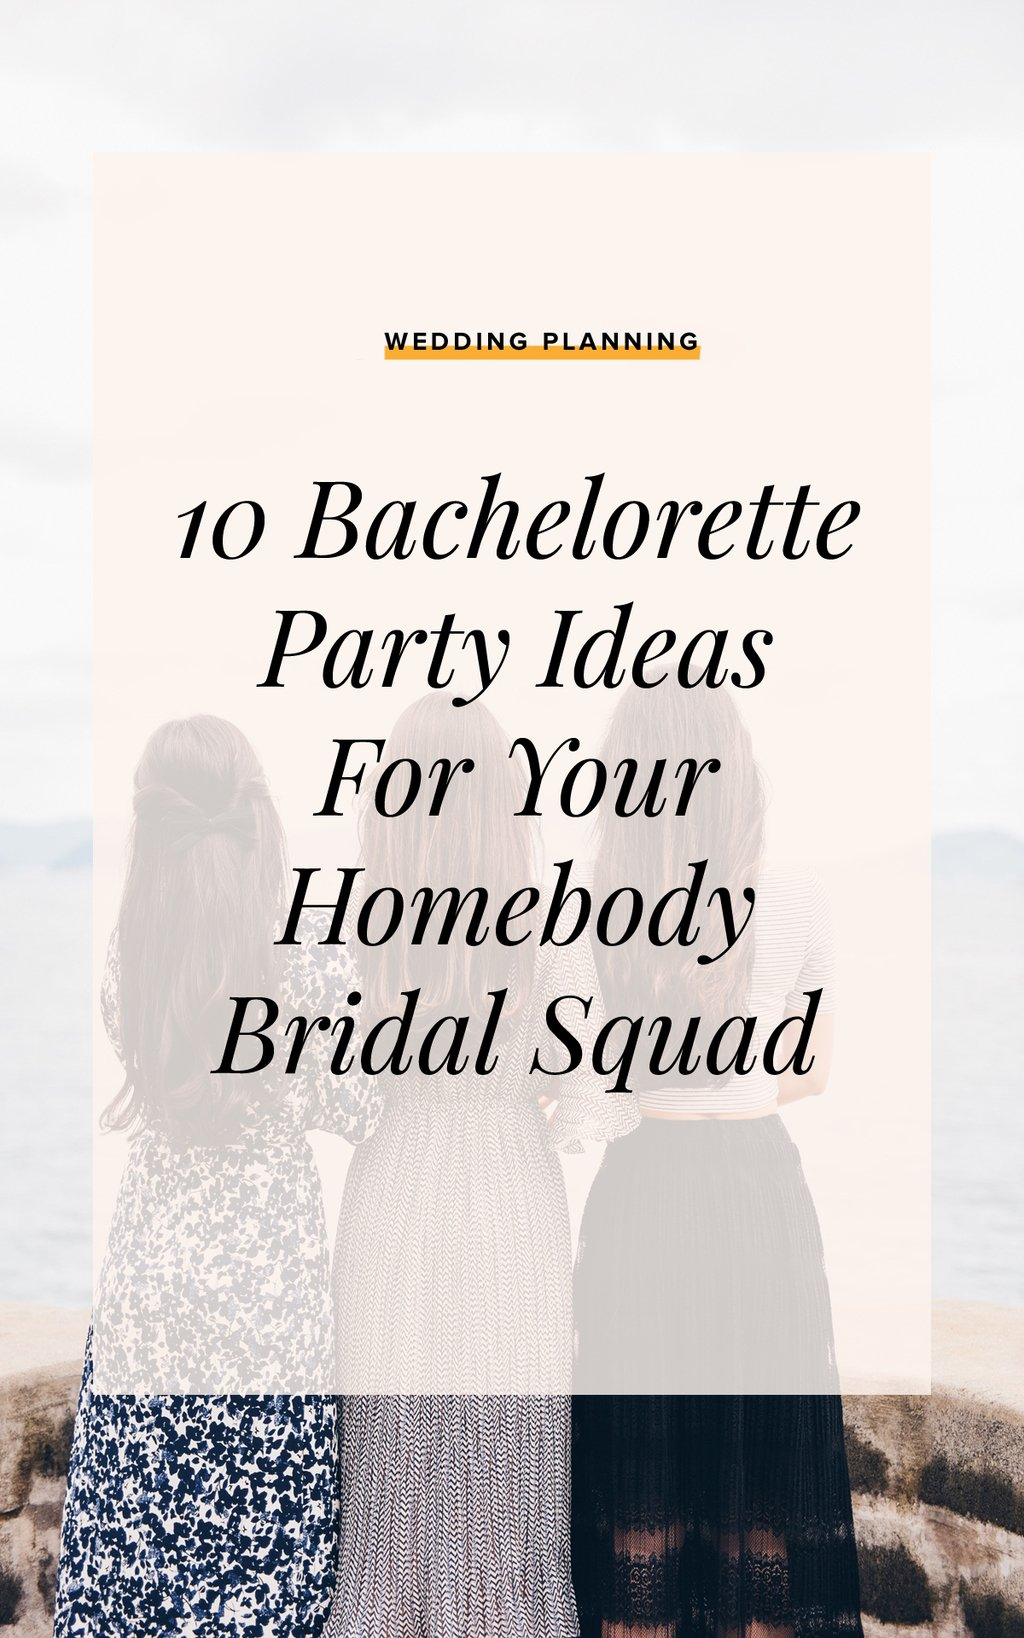 Bachelloretteparty Homebody